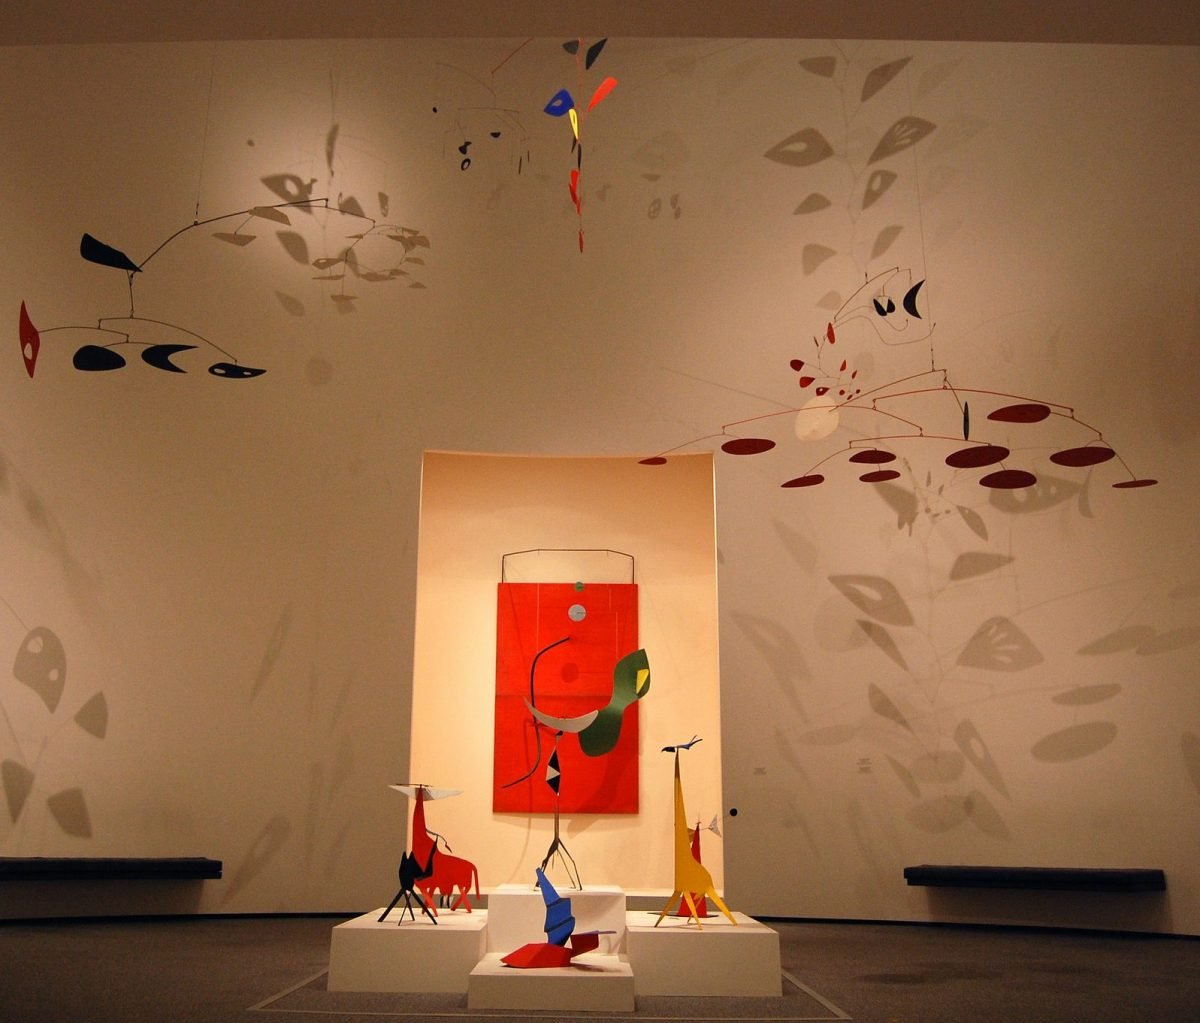 The Calder room at the National Gallery, East Wing. Photo by John-Donges, Flikr. http://bit.ly/2iqARzq.